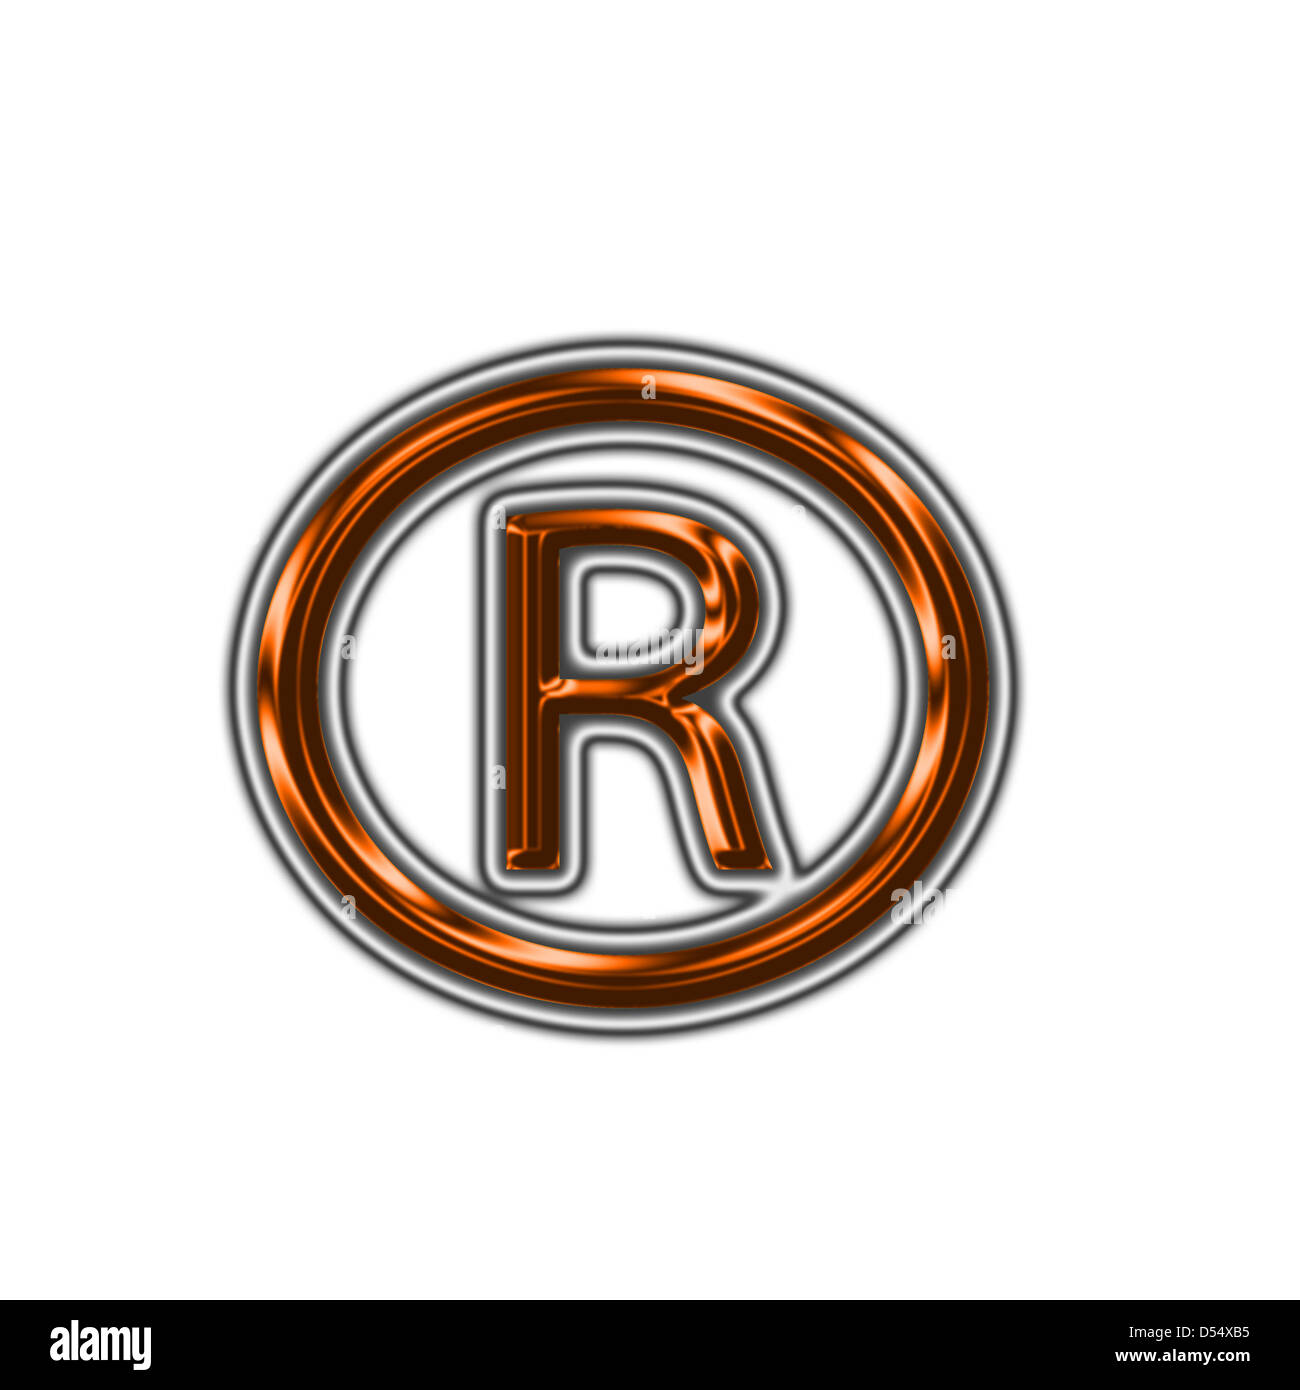 What is the symbol for registered trademark gallery symbol and registered trademark symbol is symbol to provide notice that the registered trademark symbol is symbol to biocorpaavc Choice Image